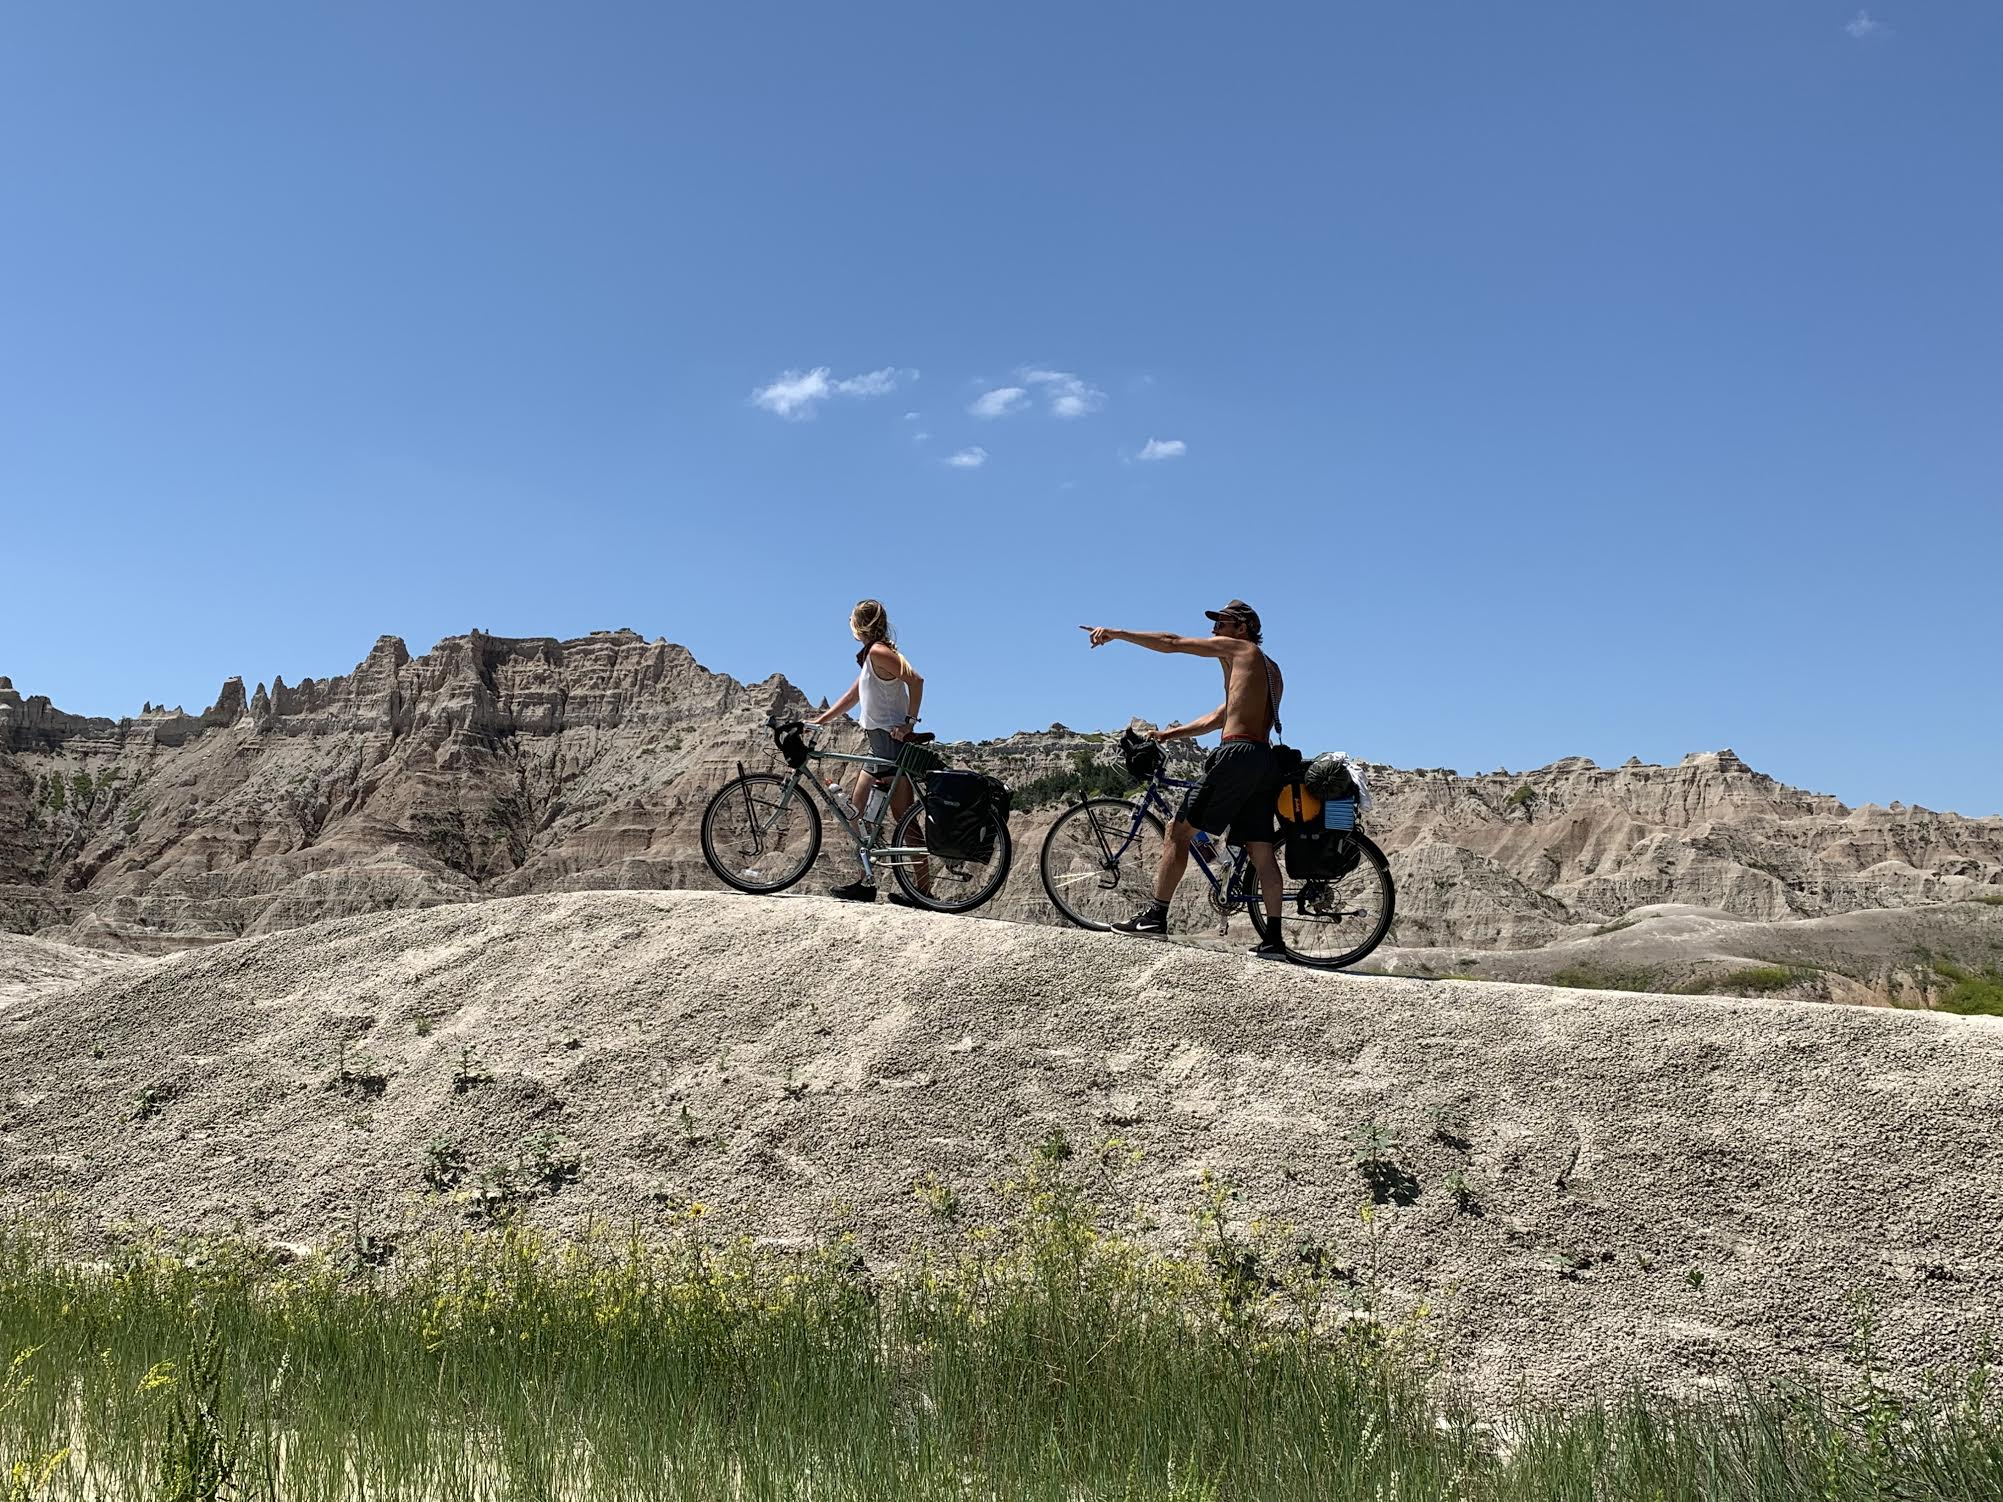 CYCLING THE USA - Live Alive is the unraveling story of how we quit our jobs, packed our lives onto our bicycles, and hit the open road on a mission to better ourselves while experiencing a life rich with raw, rugged, & gritty adventure.